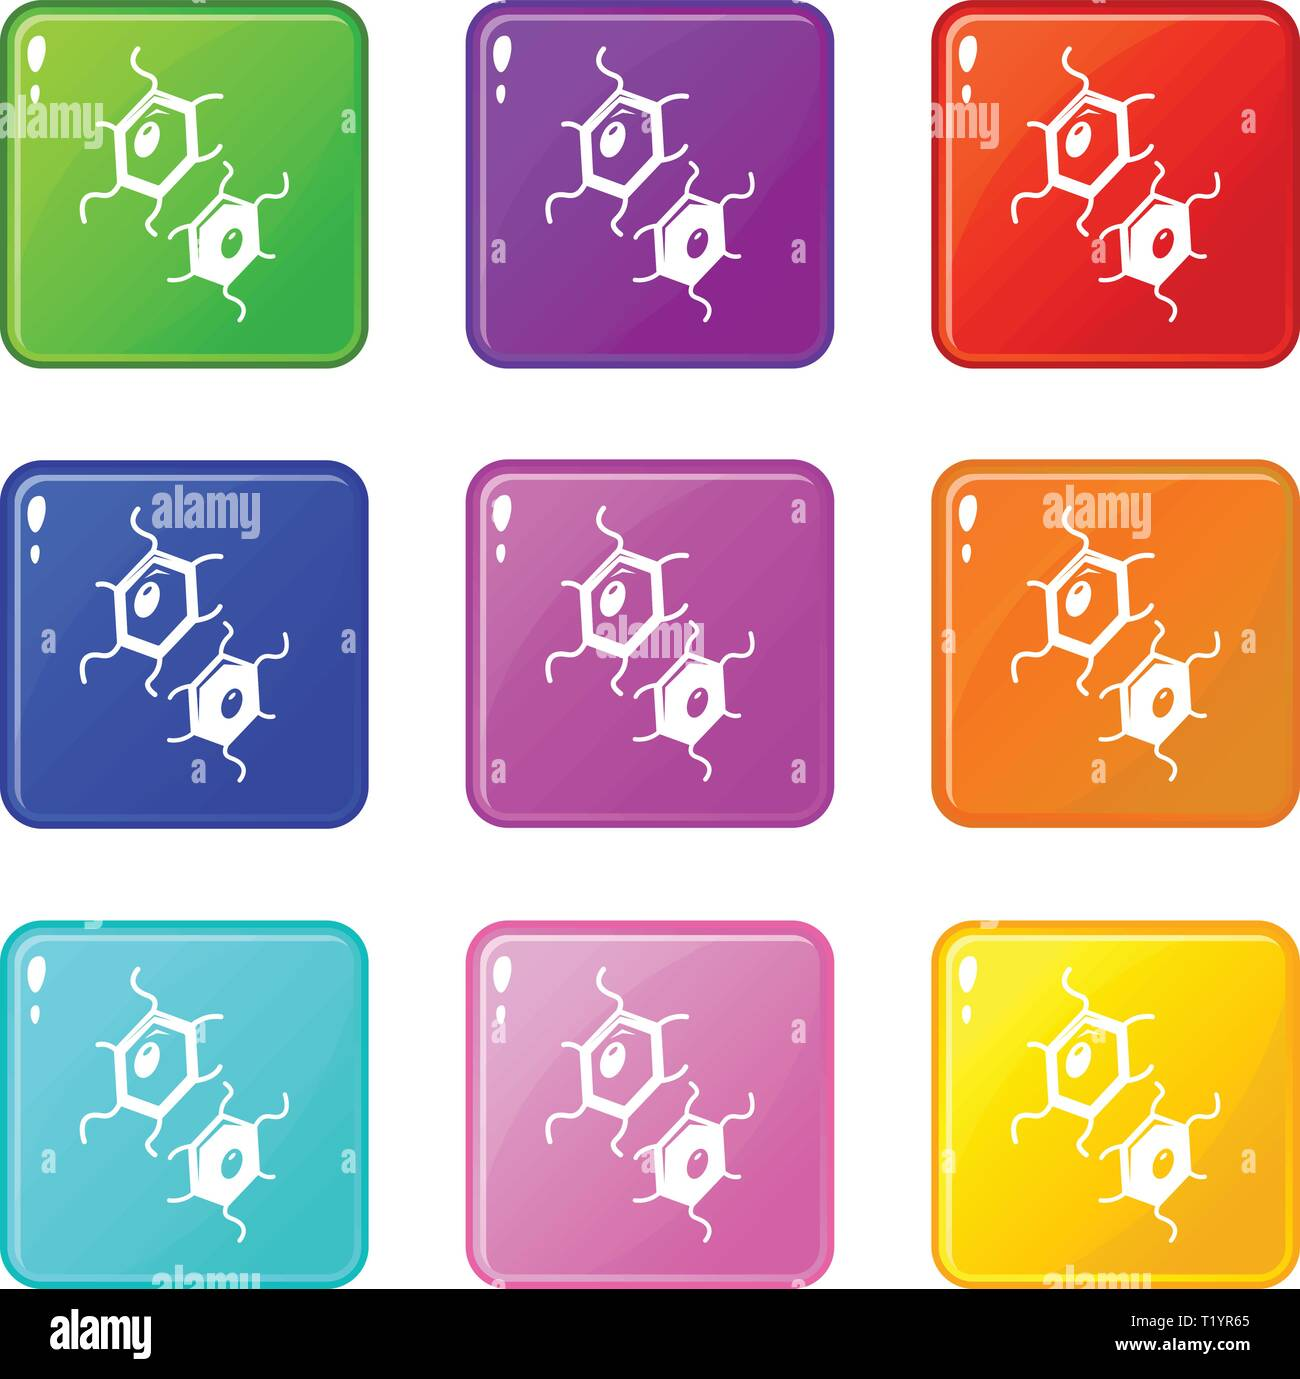 Bird flu virus icons set 9 color collection - Stock Image